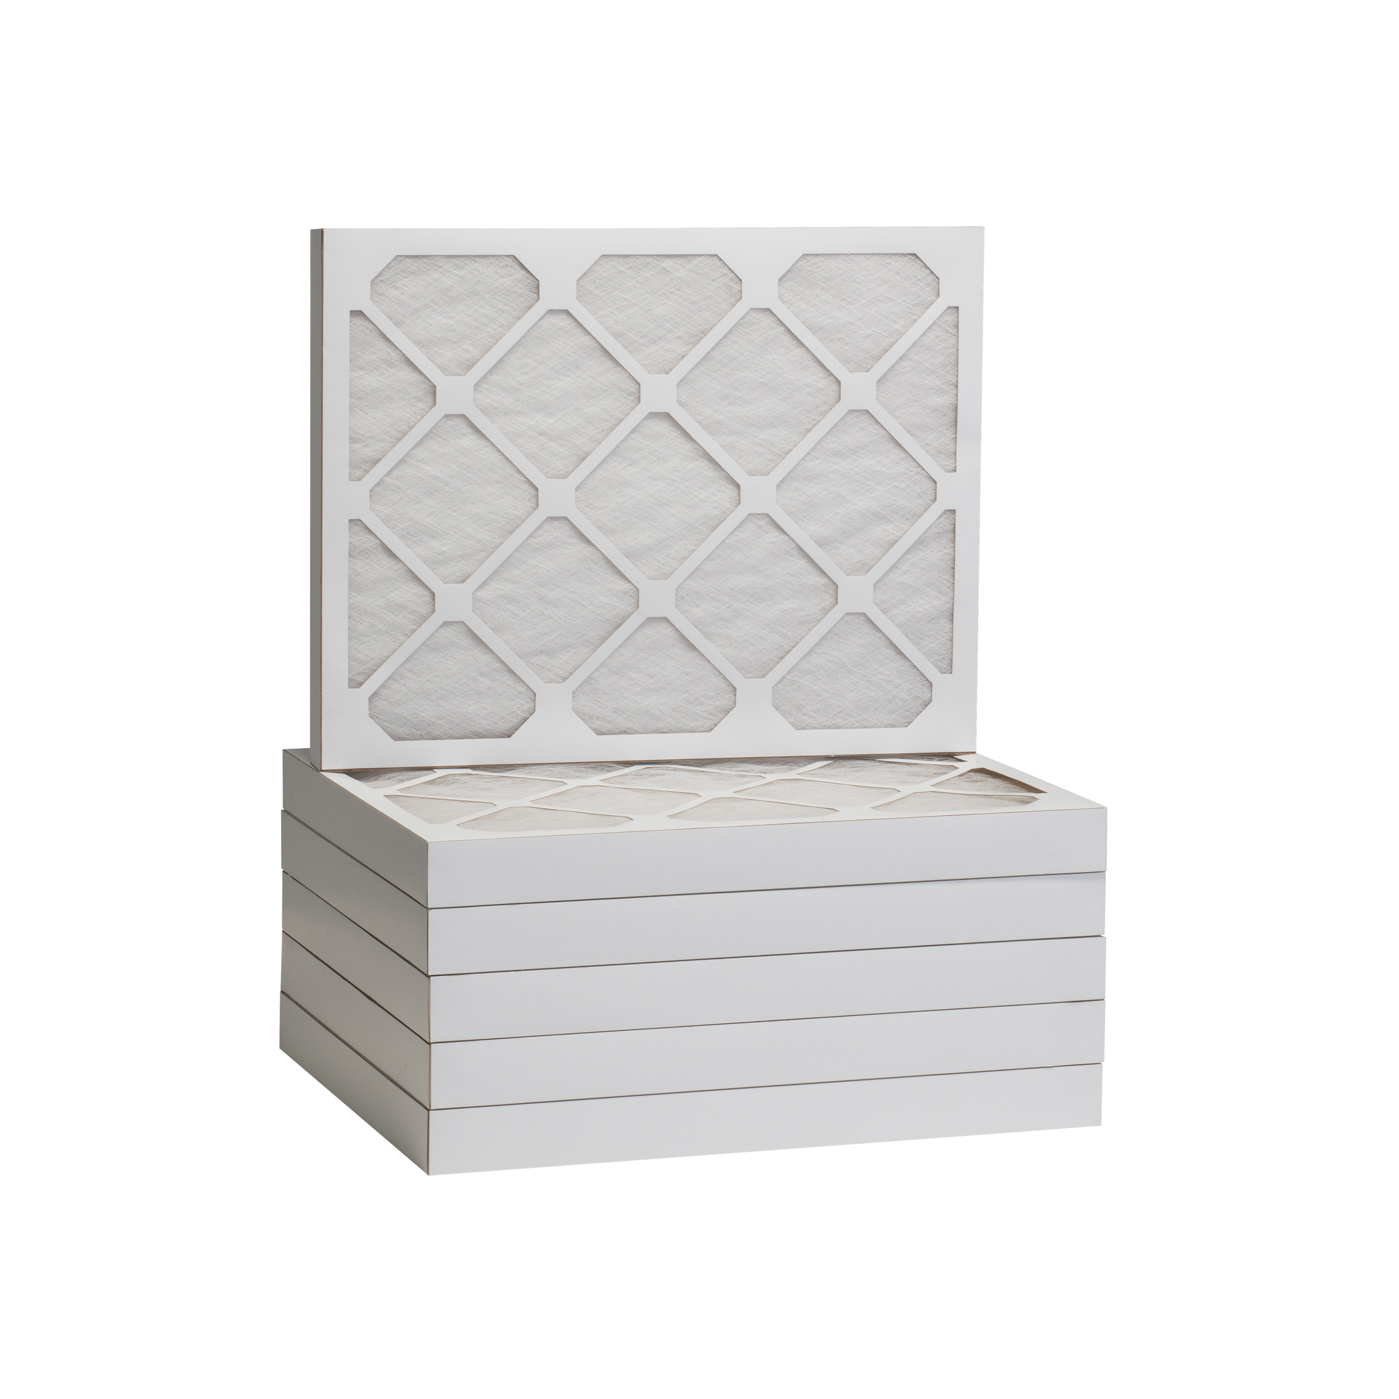 Tier1 500 Air Filter - 21-1/2 x 23-1/2 x 2 (6-Pack) TIER1_D50S_6221H23H_6_PACK